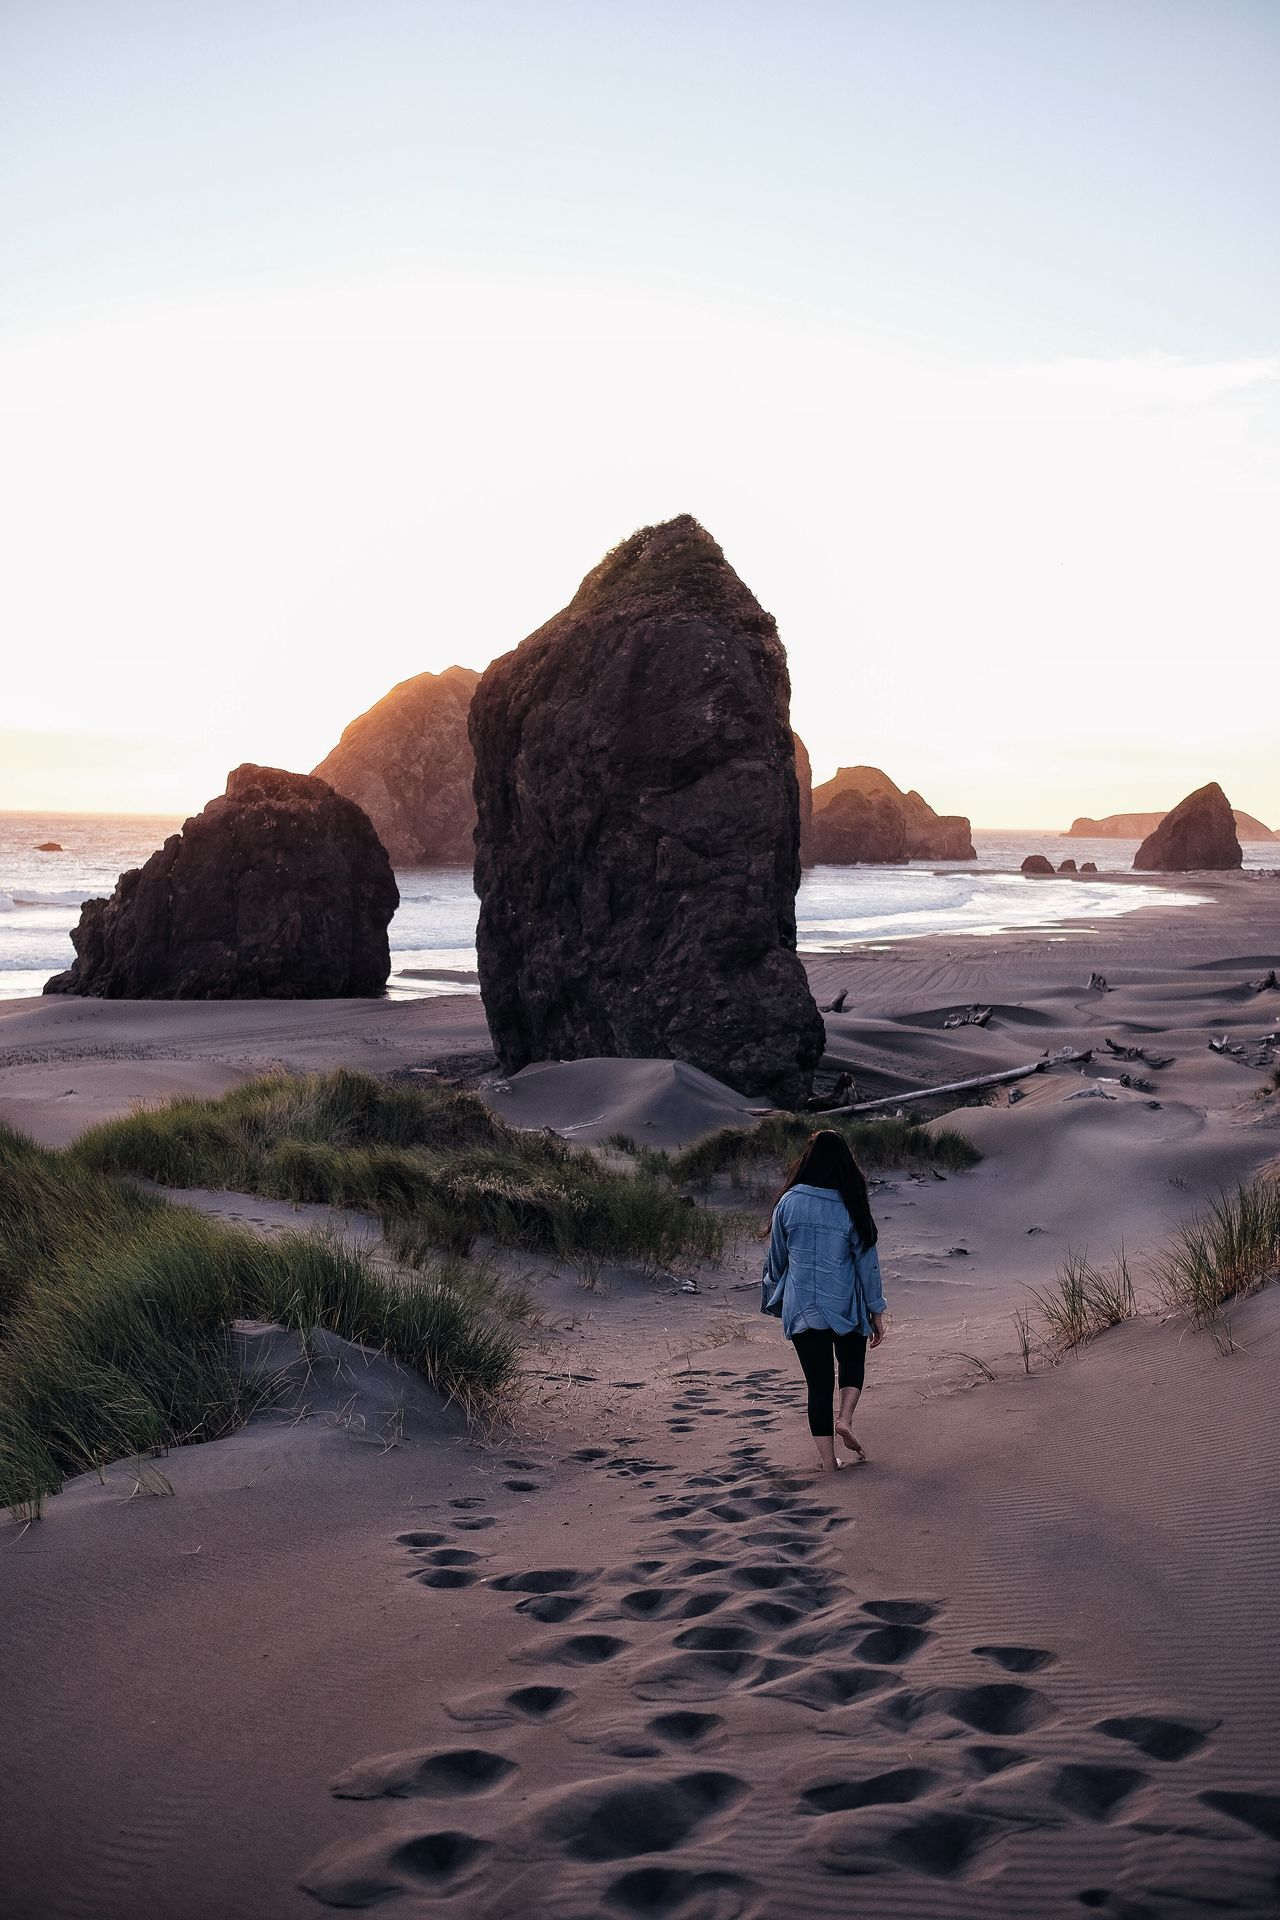 This could be your monument Beach Sea Sand Sky Outdoors Nature Coastline Sand Dune Beauty In Nature Water 12daysofeyeem Prints Of Nature Scenics Oregon Travel Destinations Landscape PNW Tranquil Scene People Finding New Frontiers Traveling Home For The Holidays Miles Away